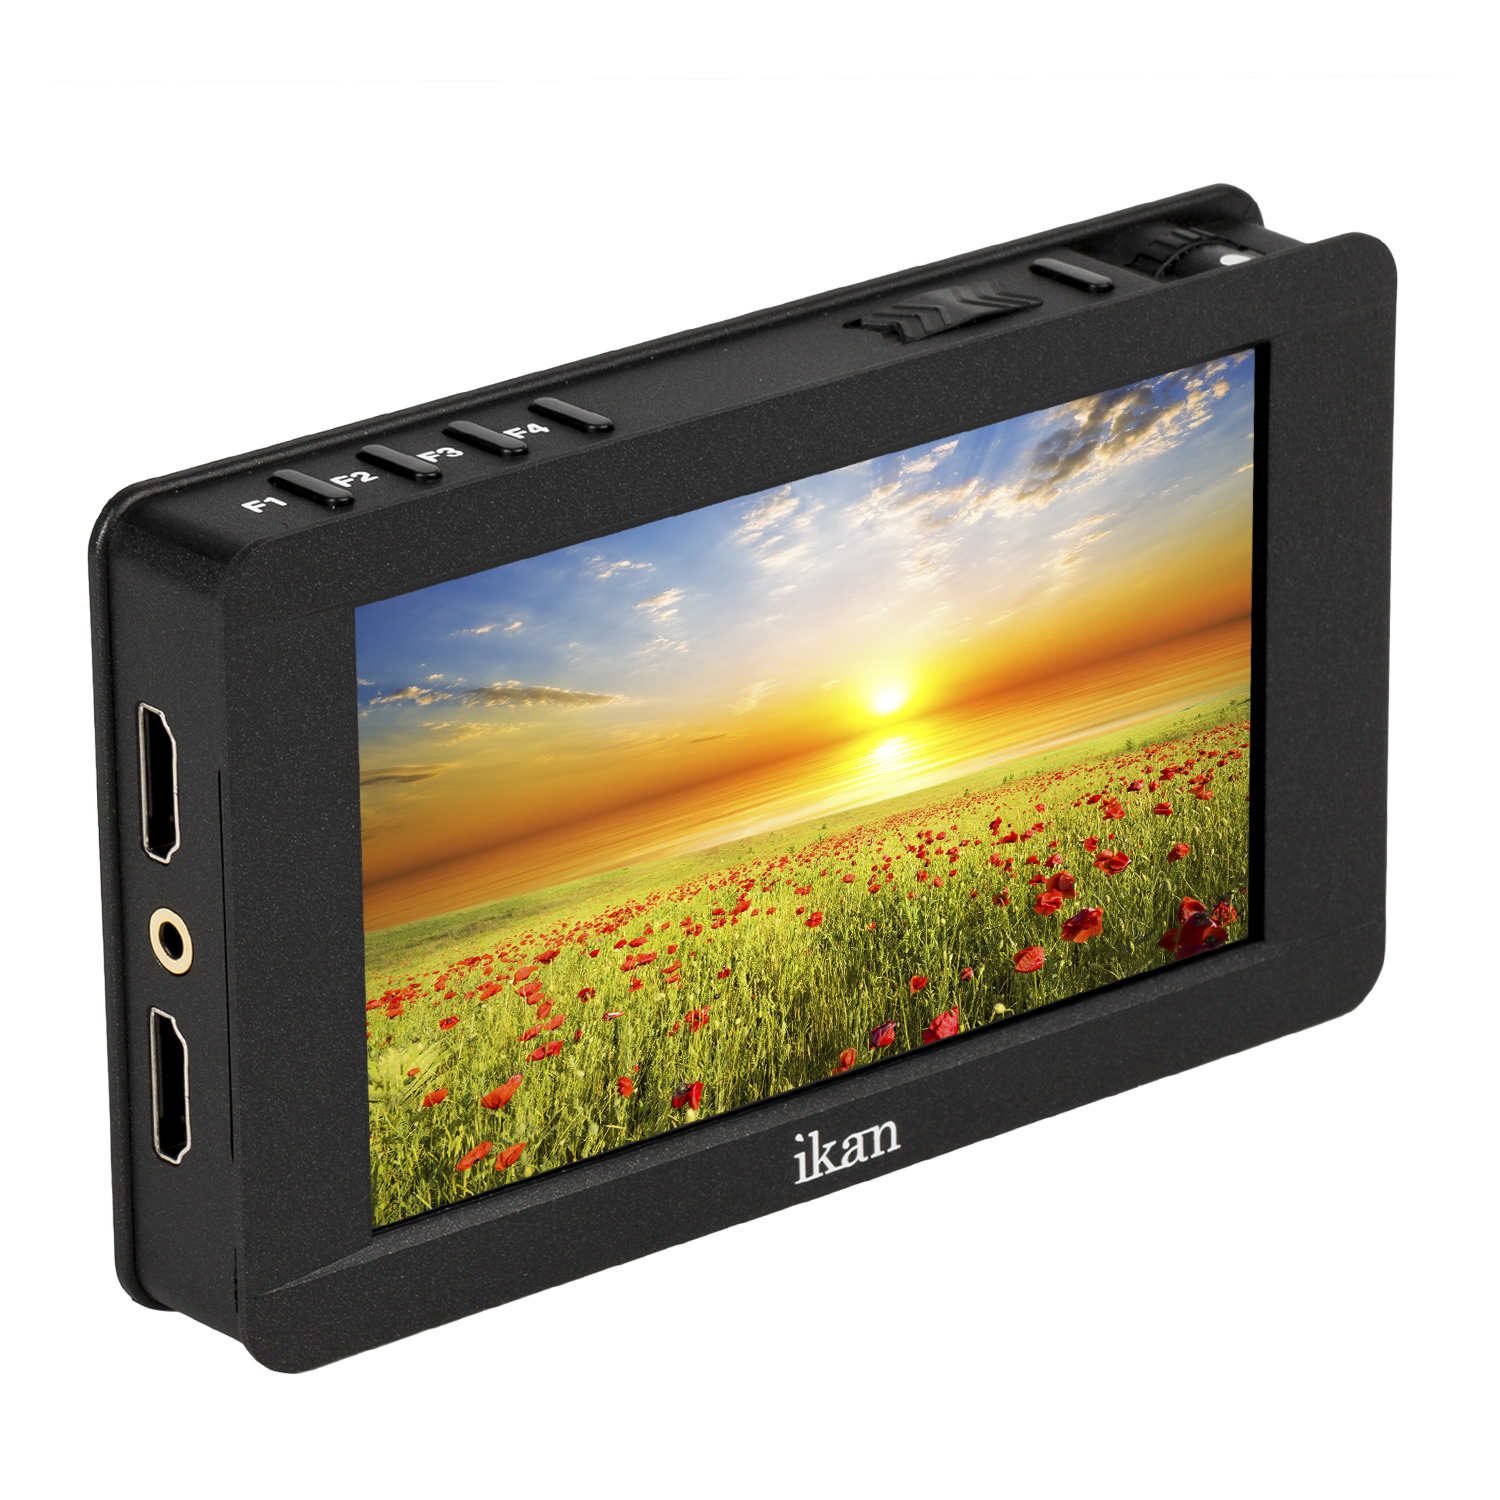 field monitor for videography 1 image